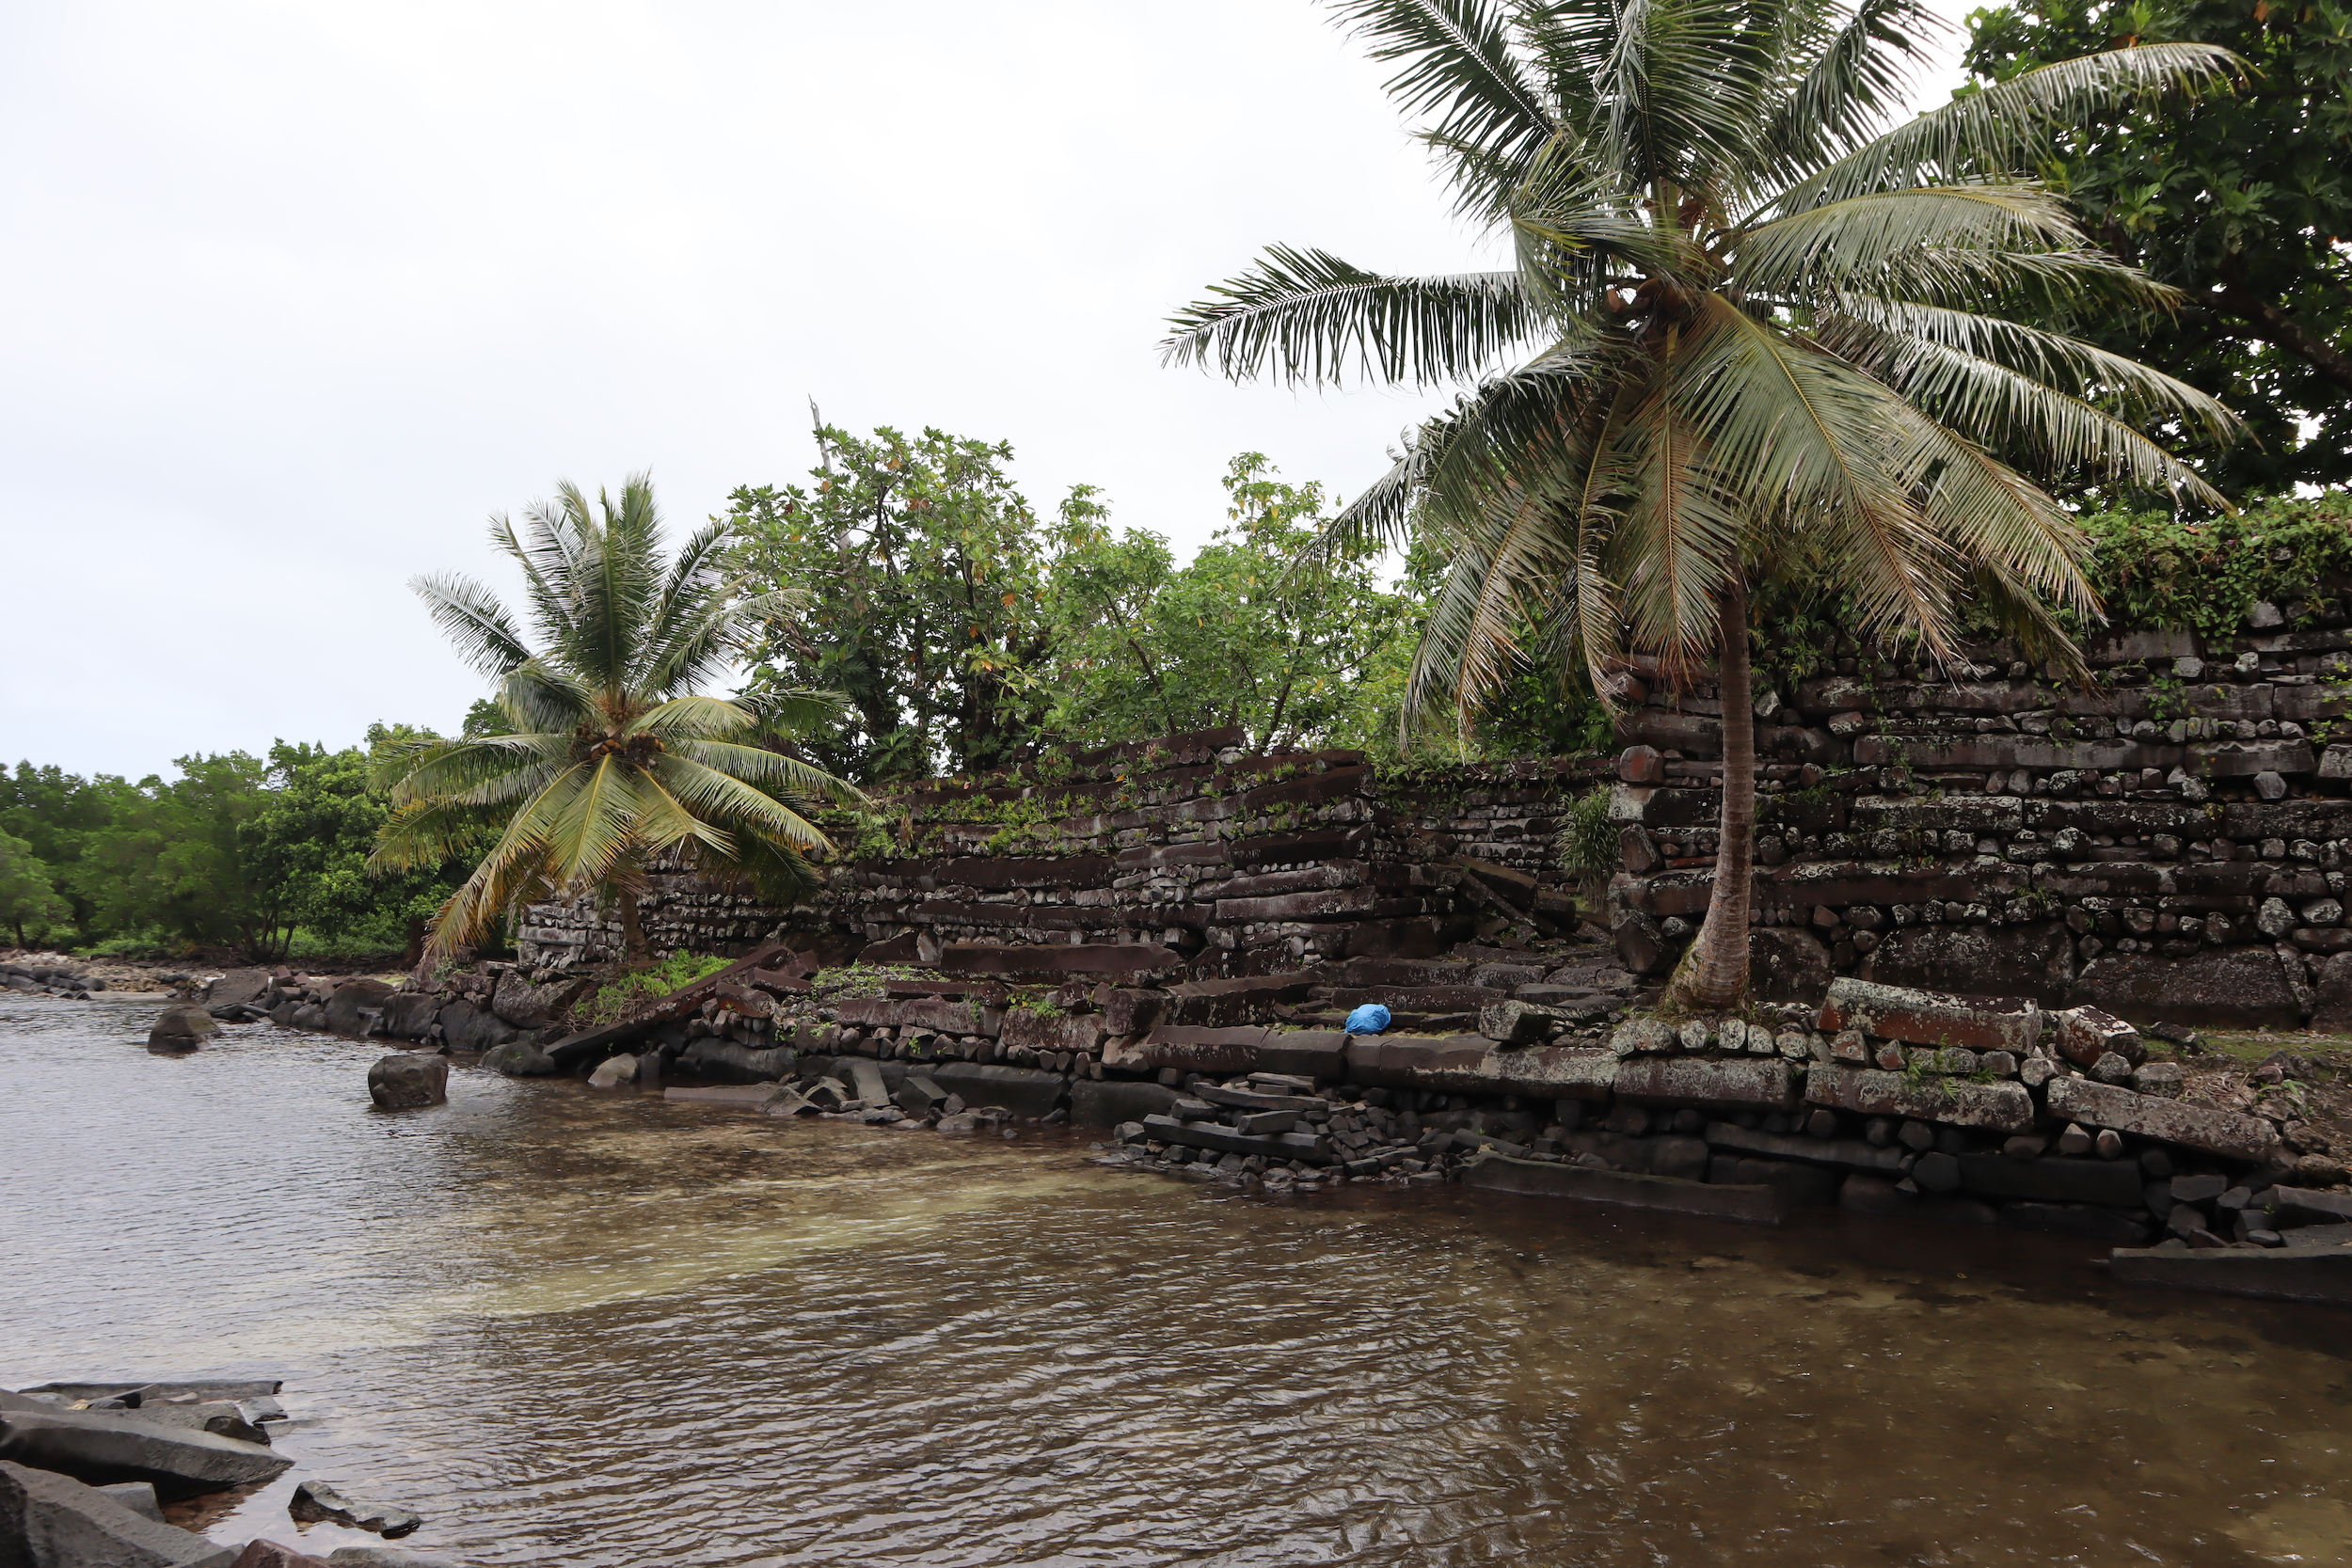 …to arrive at the ancient ruins of Nan Madol.